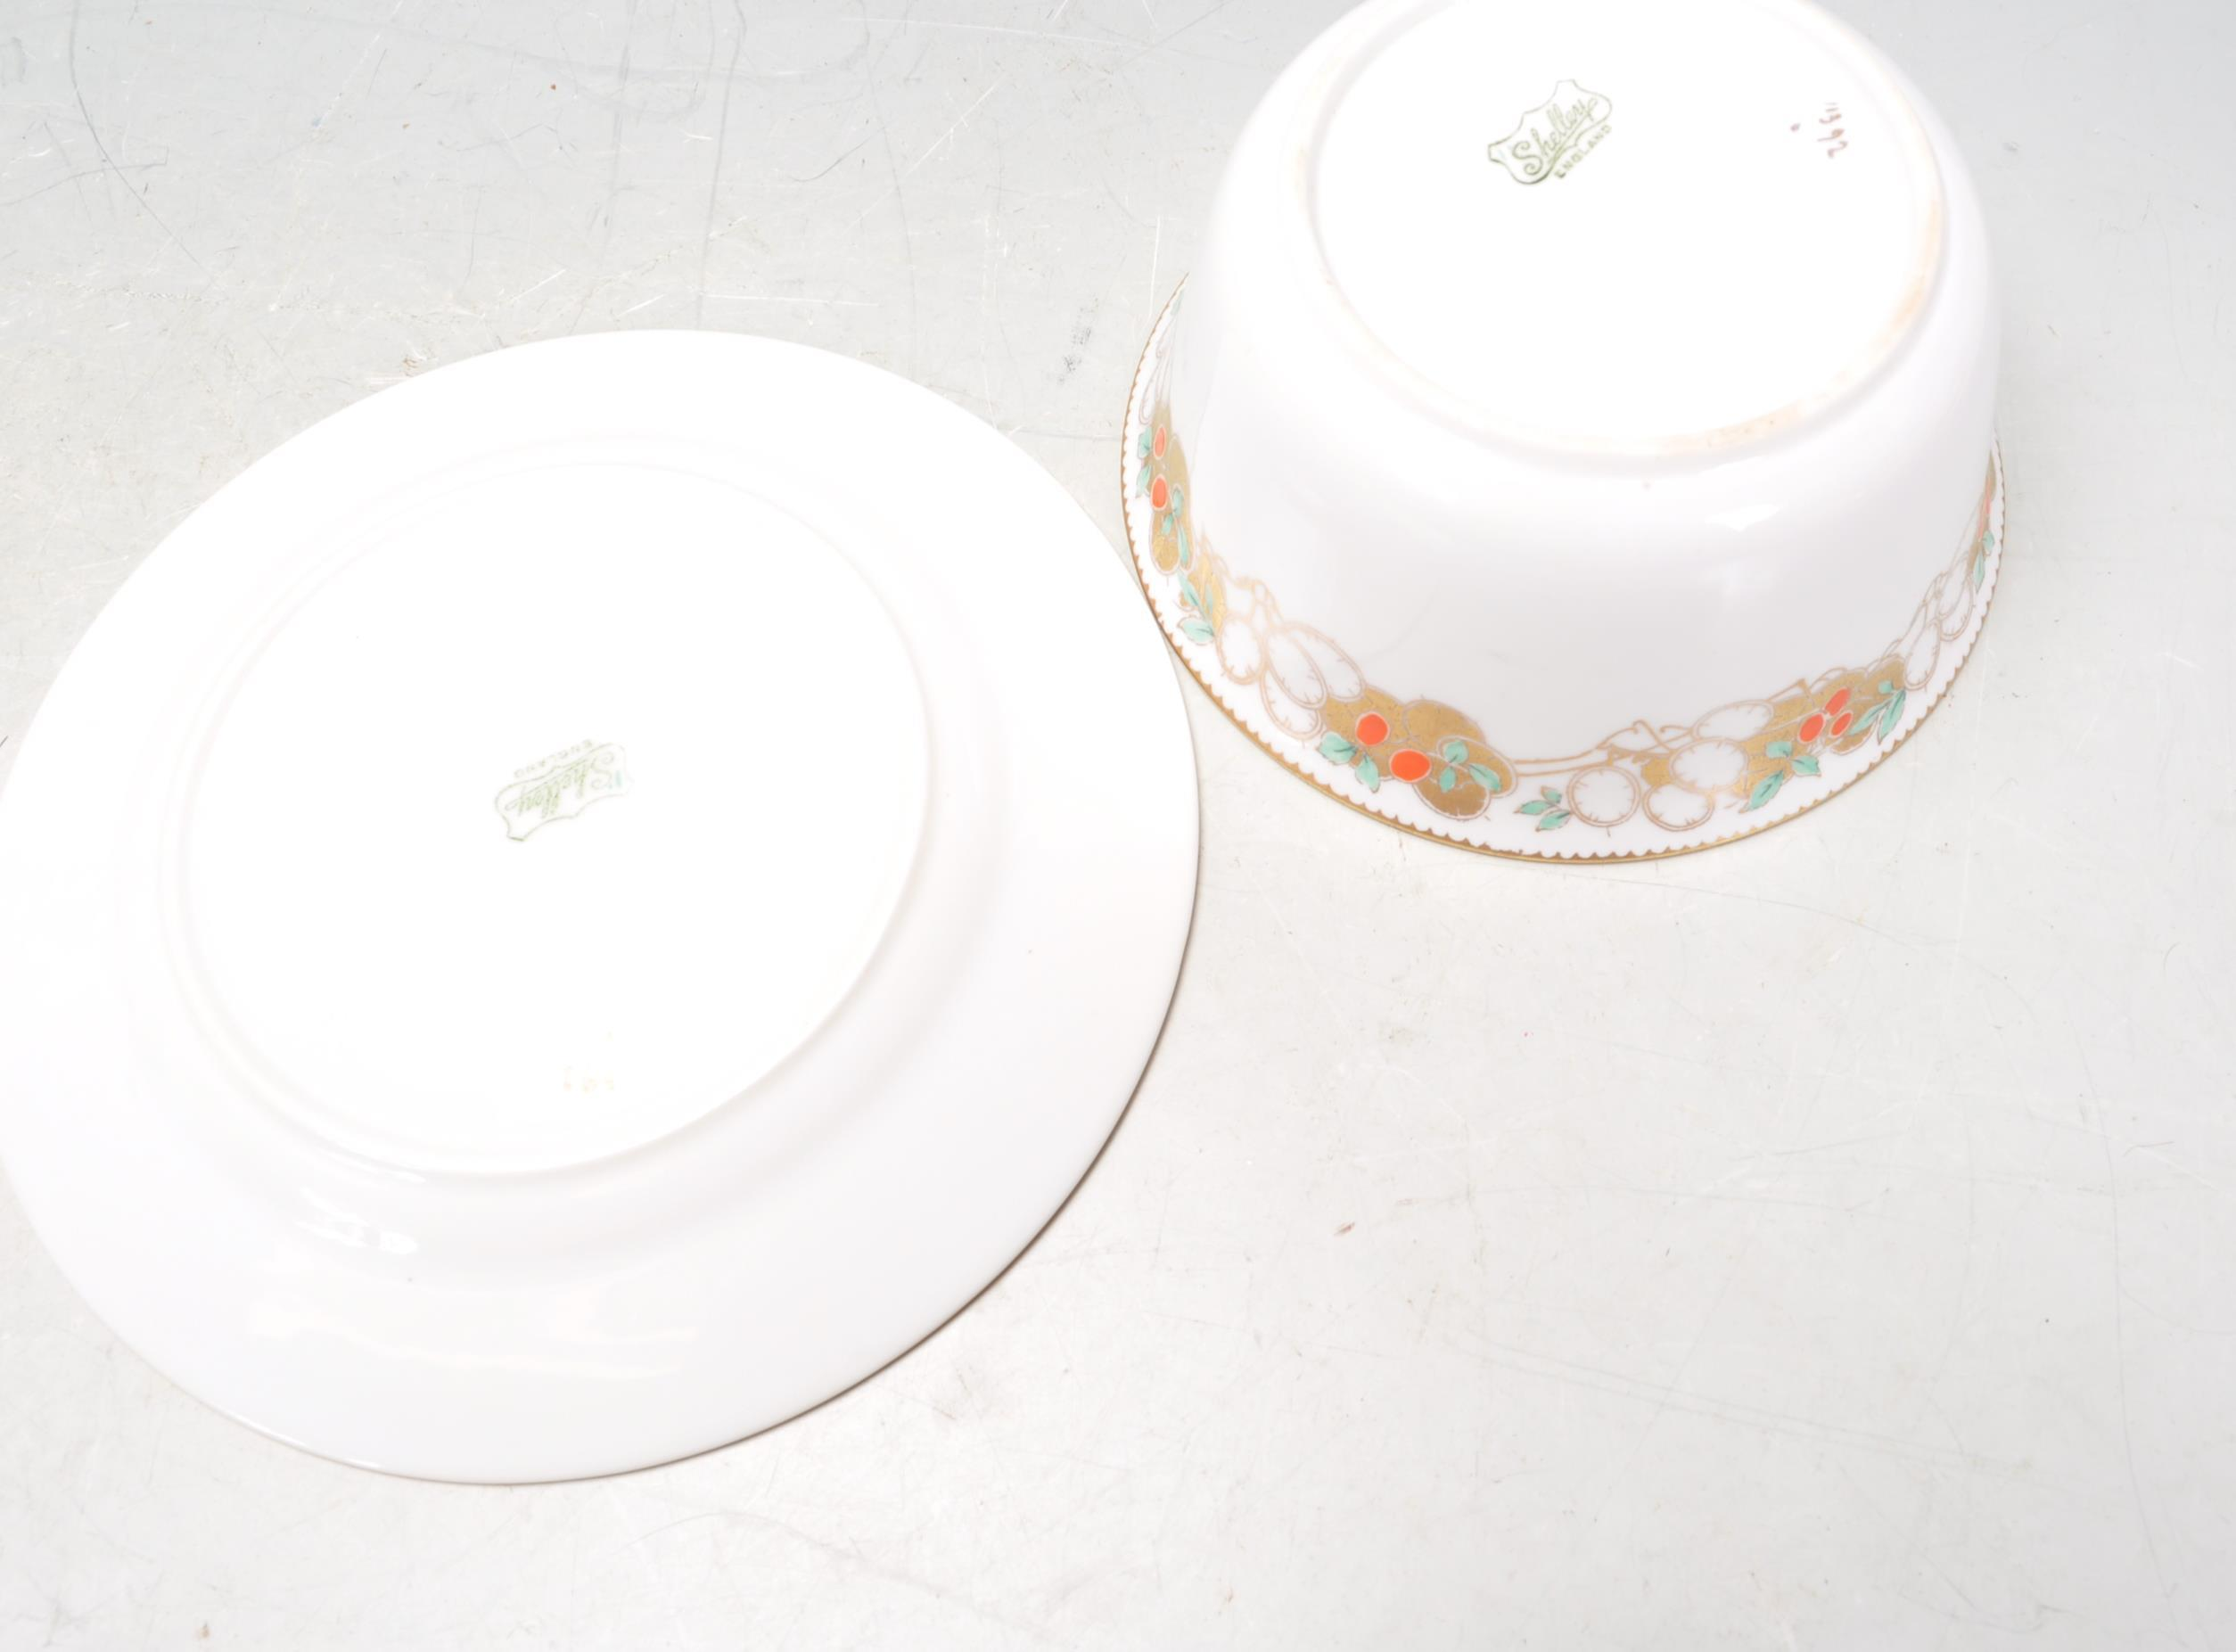 VINTAGE SHELLY TEA SET AND ADAMS PLATES - Image 8 of 14